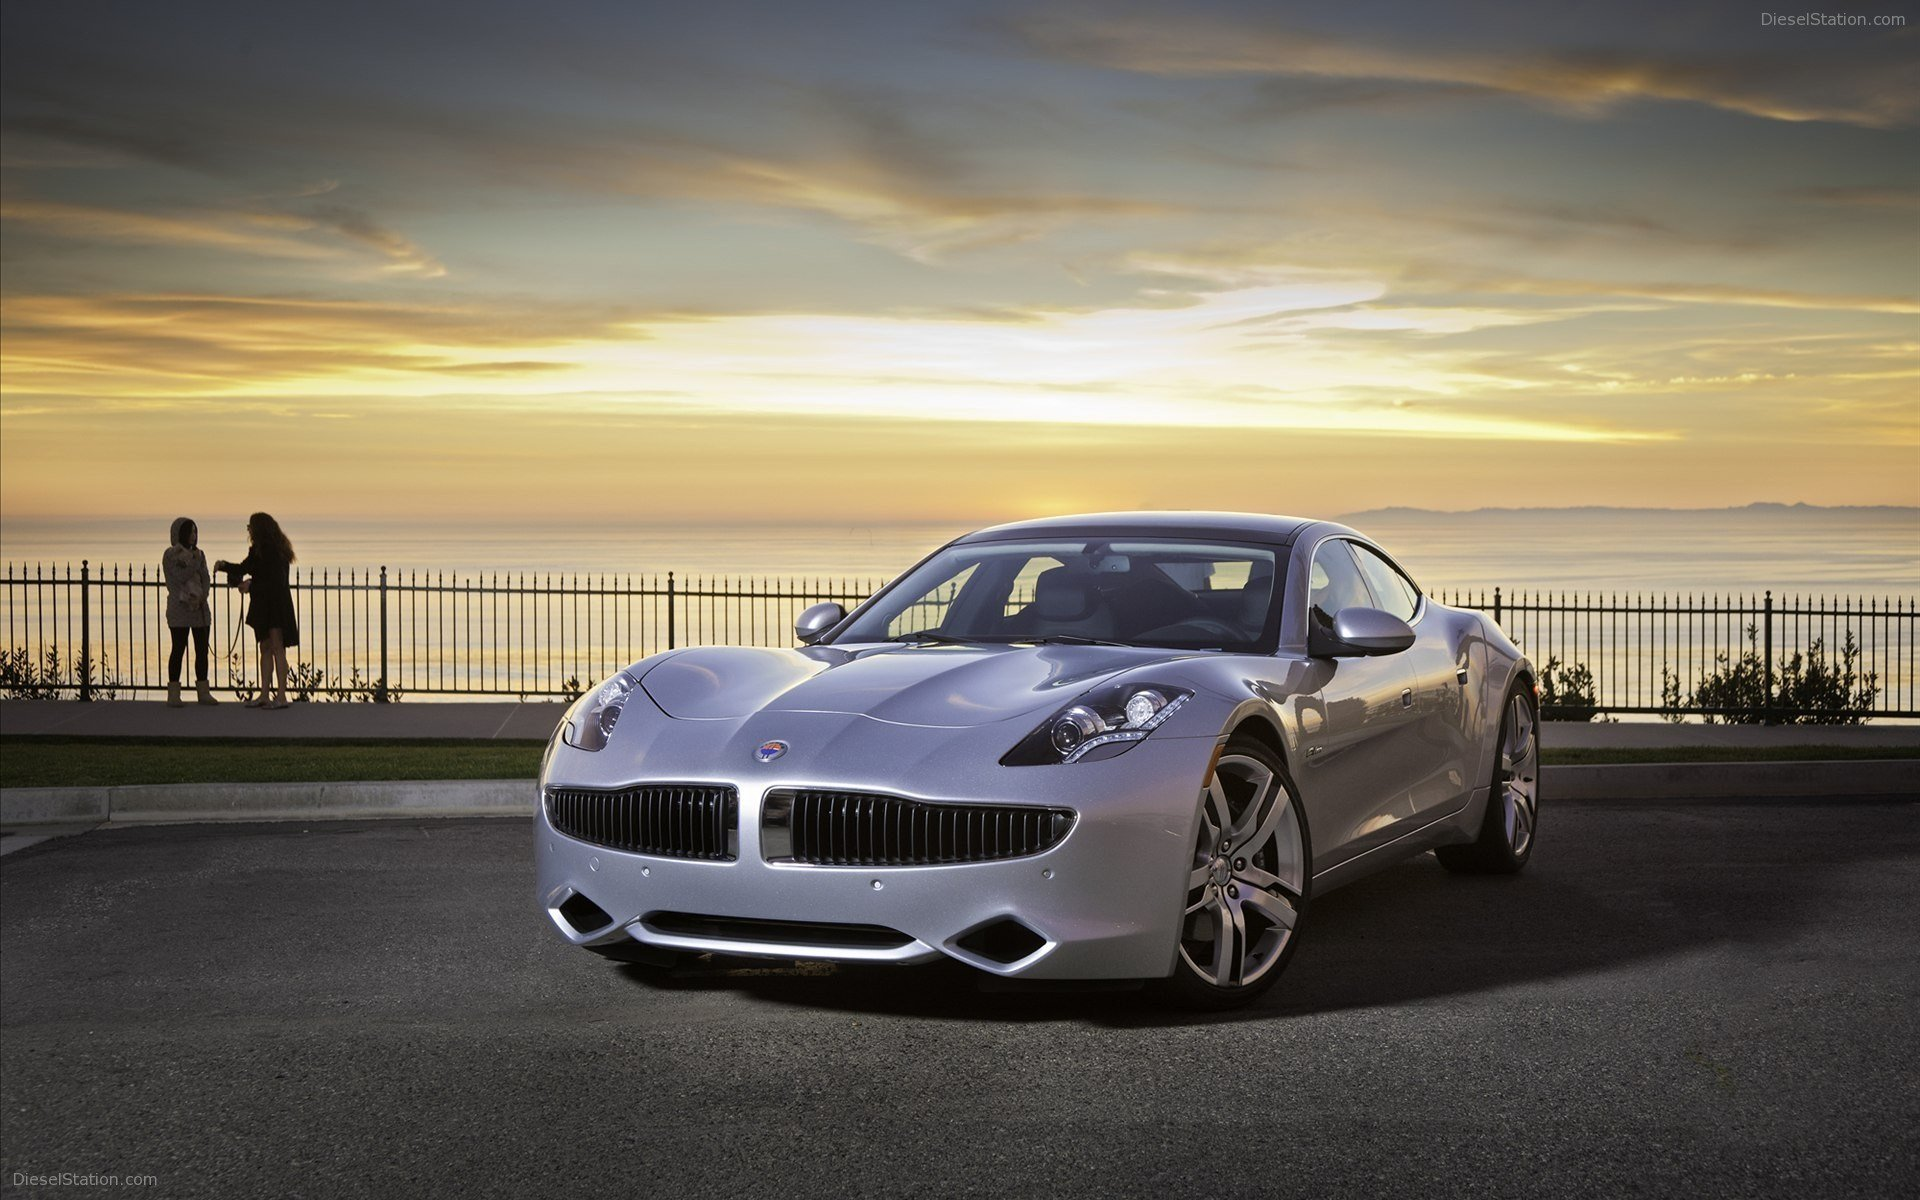 Latest Fisker Karma Hybrid 2012 Widescreen Exotic Car Wallpapers Free Download